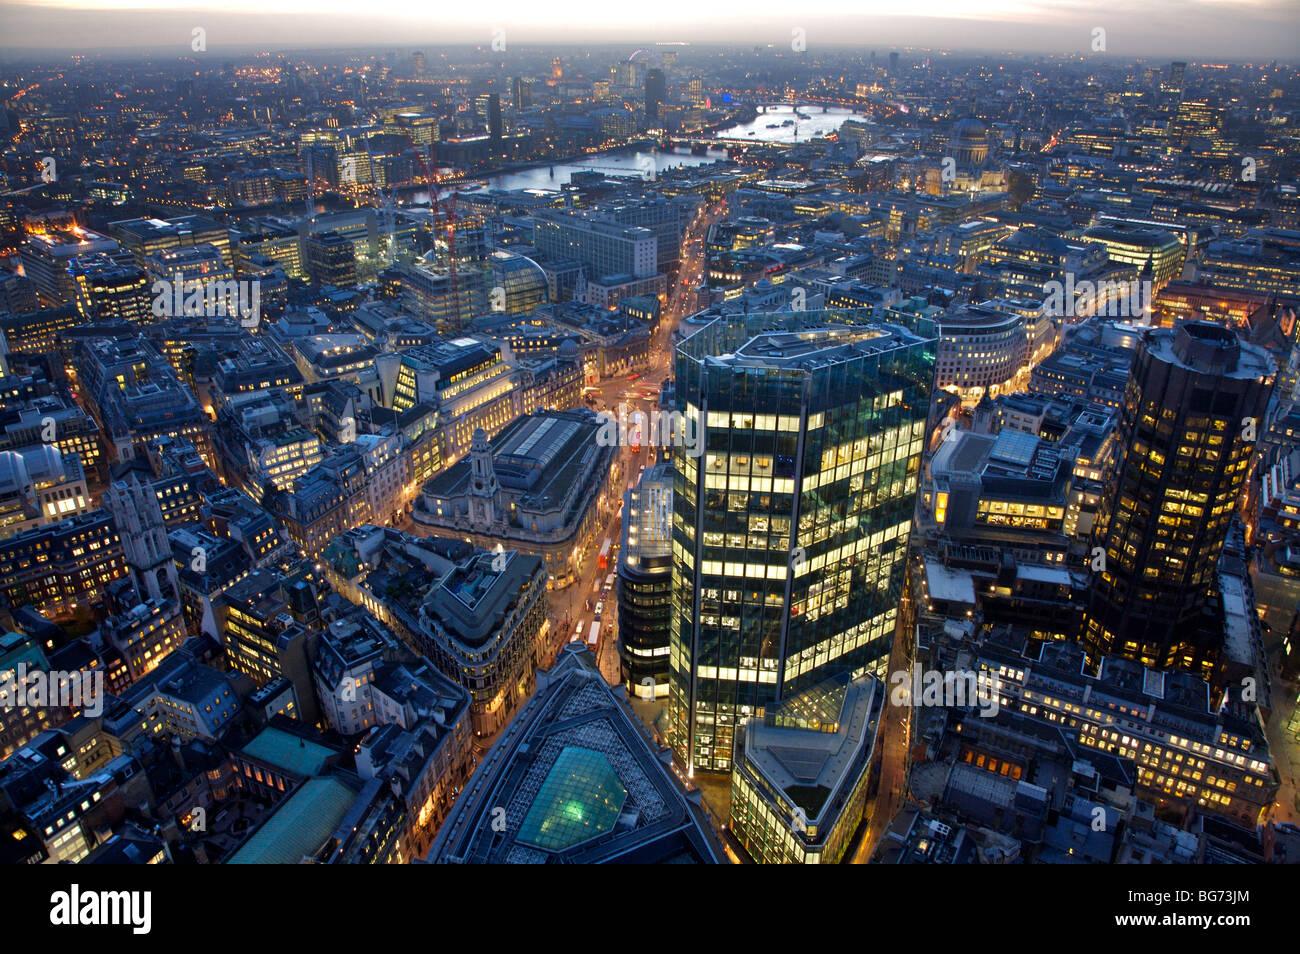 Evening aerial view from old broad street looking over Bank City of London down Threadneedle Street over Thames - Stock Image